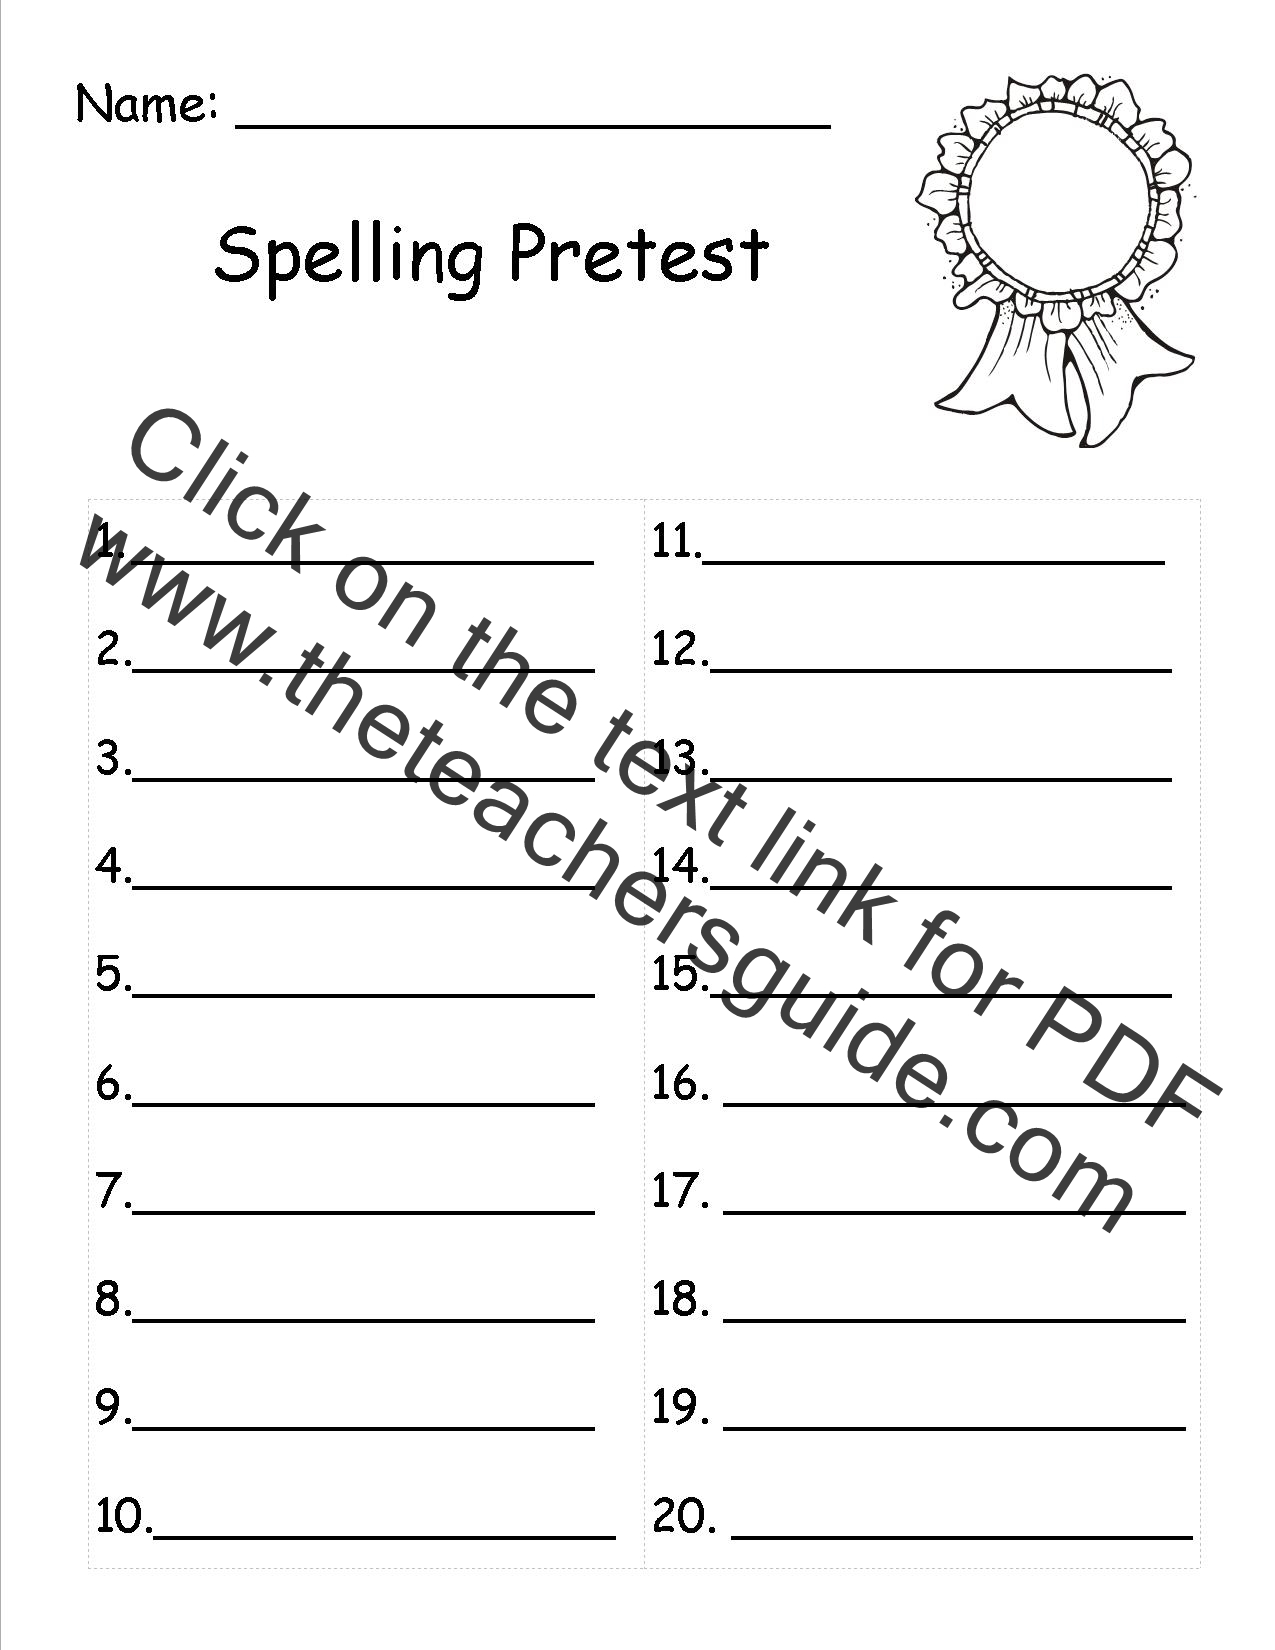 3rd Grade Spelling Worksheets Printable : Spelling practice for rd grade english teaching